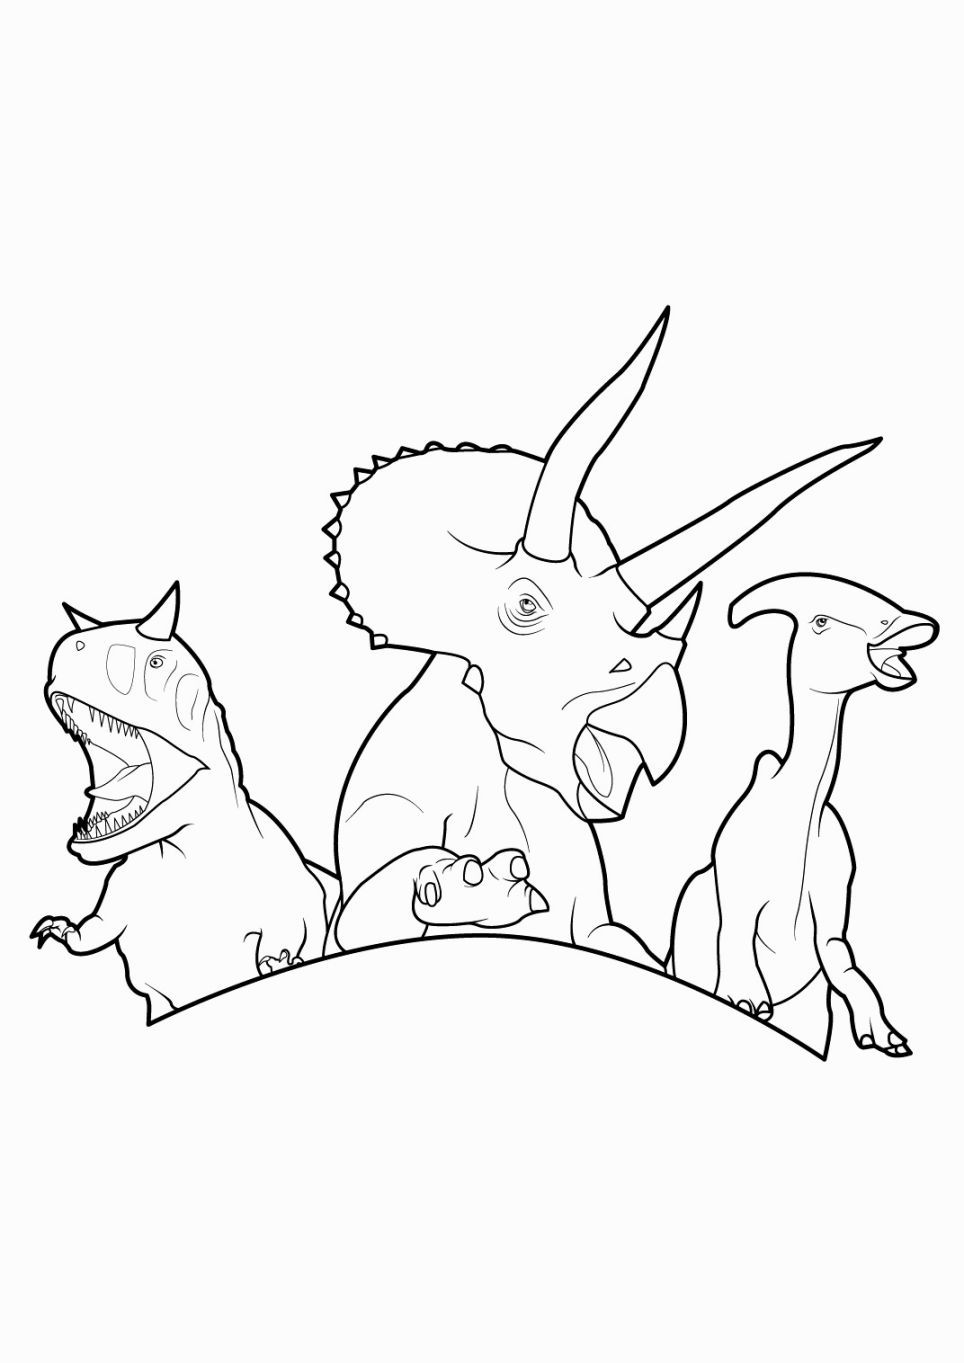 Dinosaur King Coloring Pages Dinosaur Coloring Pages Dinosaur Coloring Coloring Pages For Kids